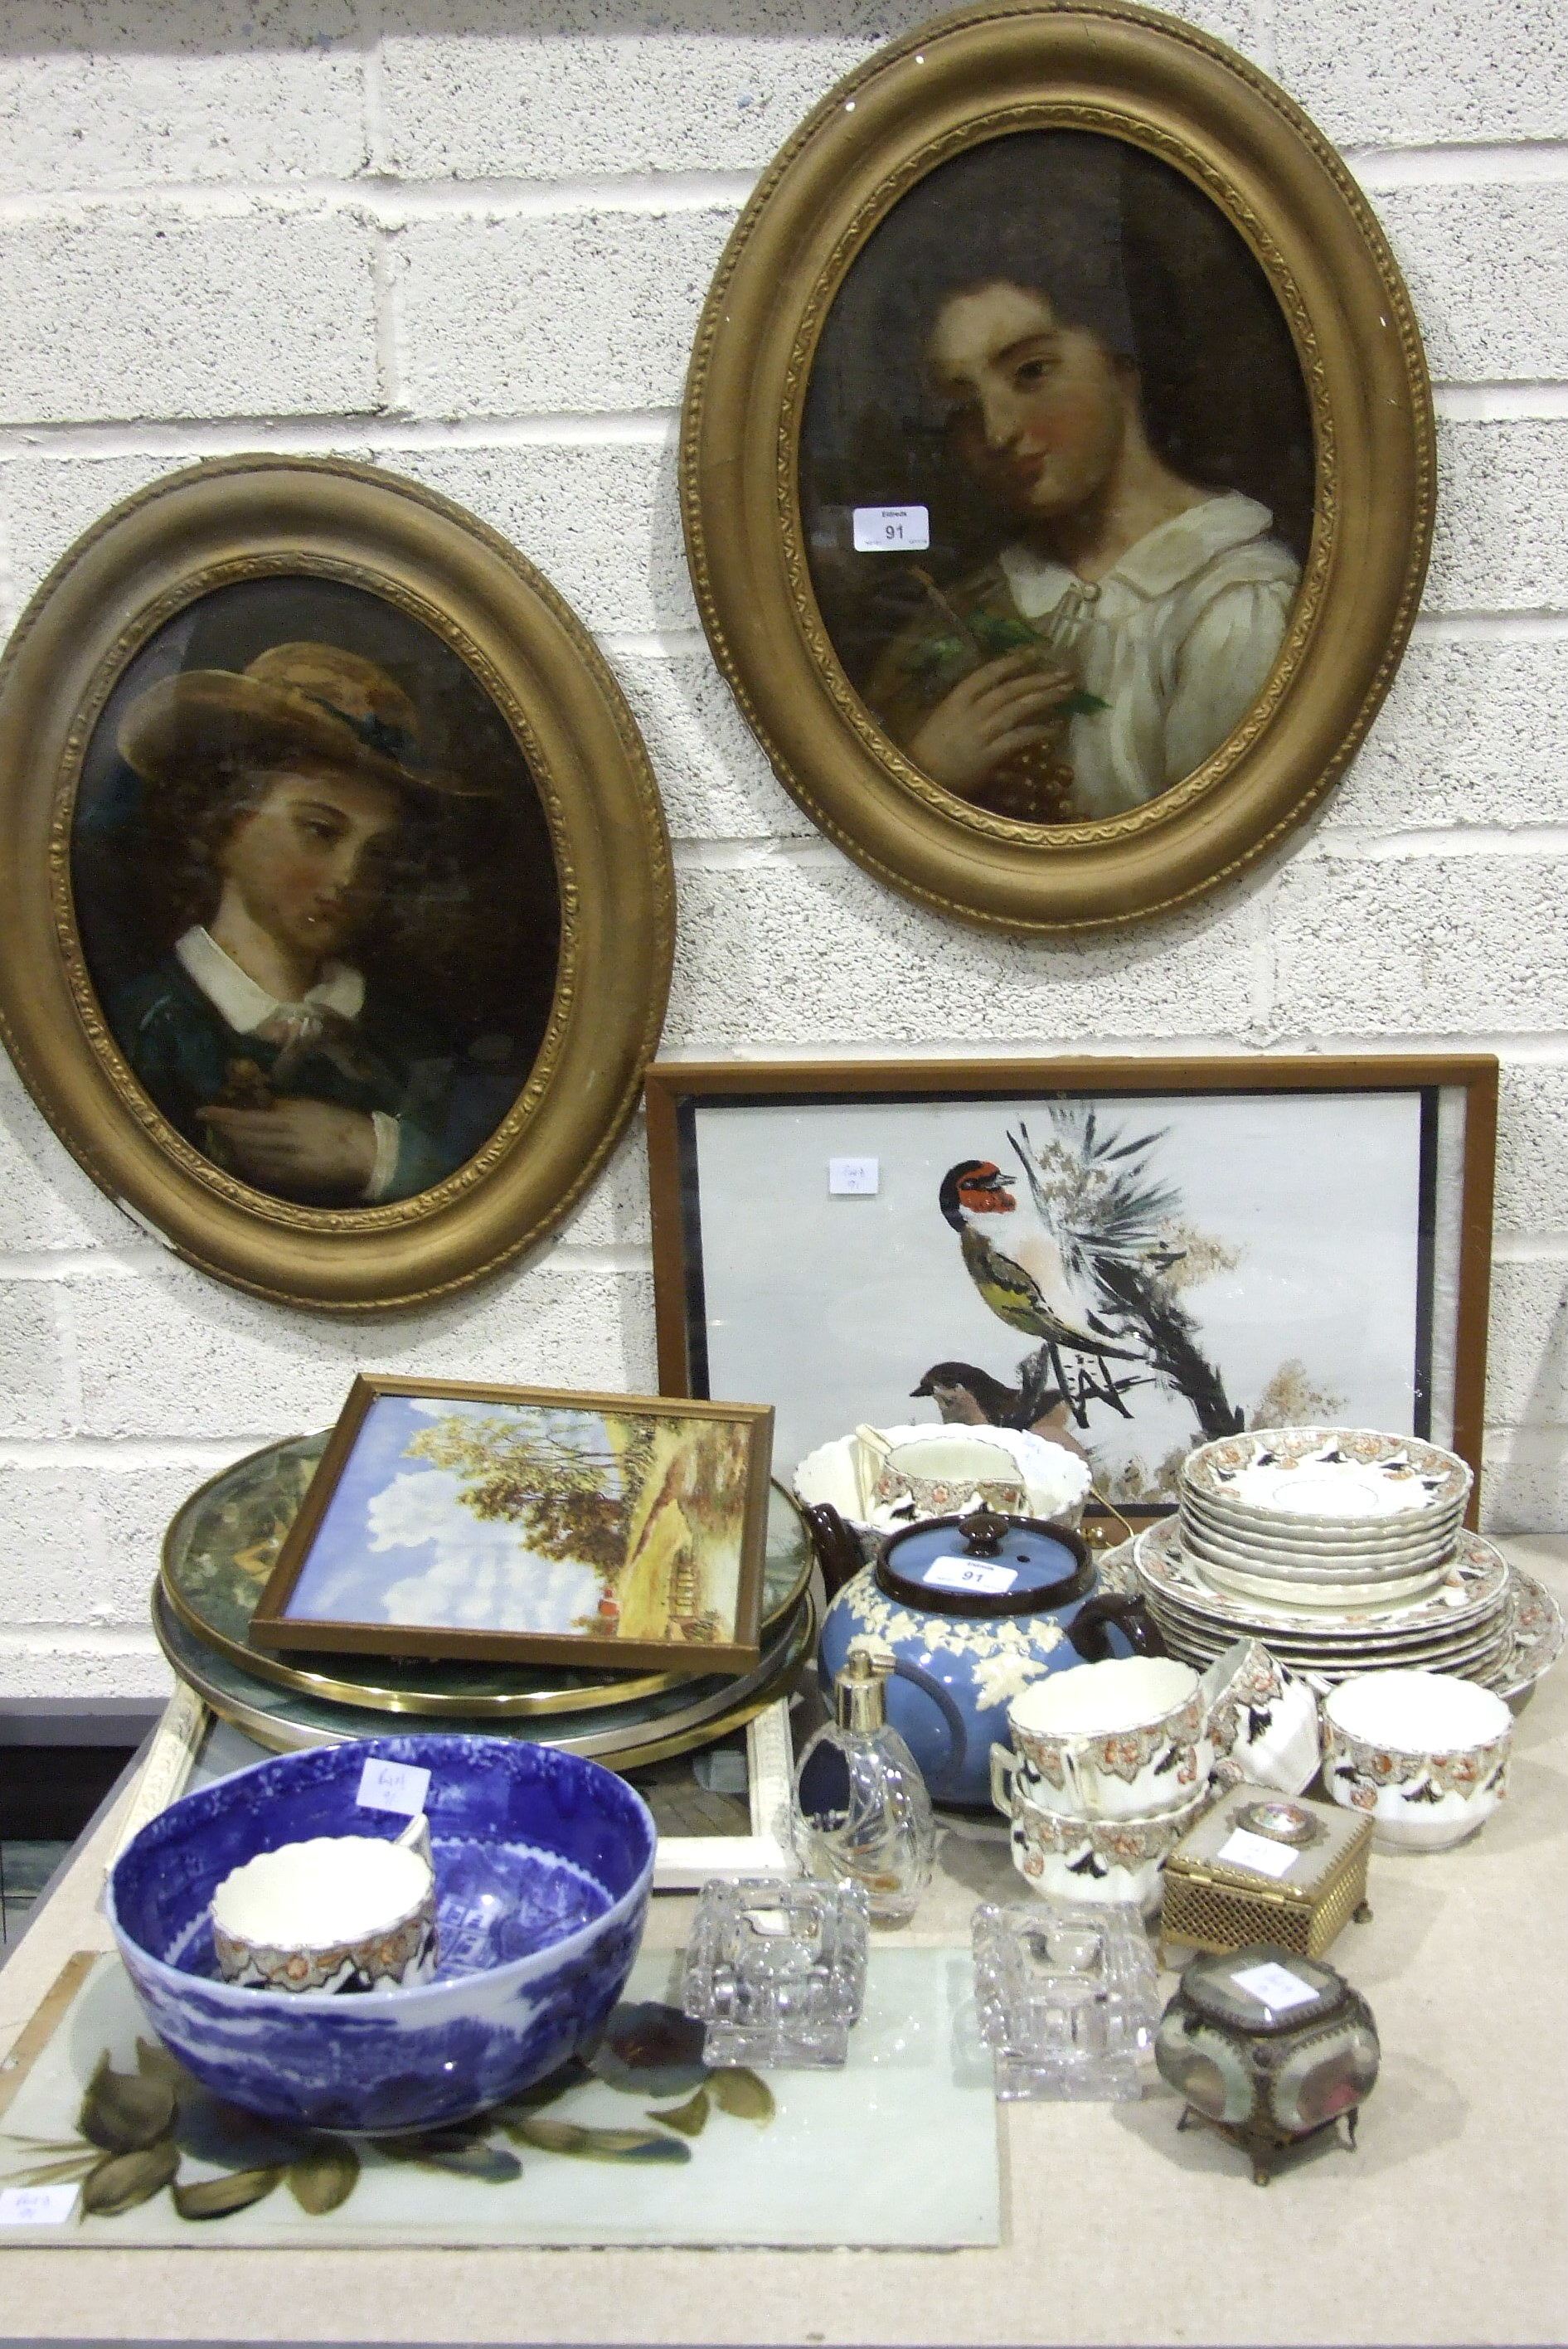 Lot 91 - A pair of 19th century oval paintings on glass, depicting a young woman holding a bunch of grapes, a